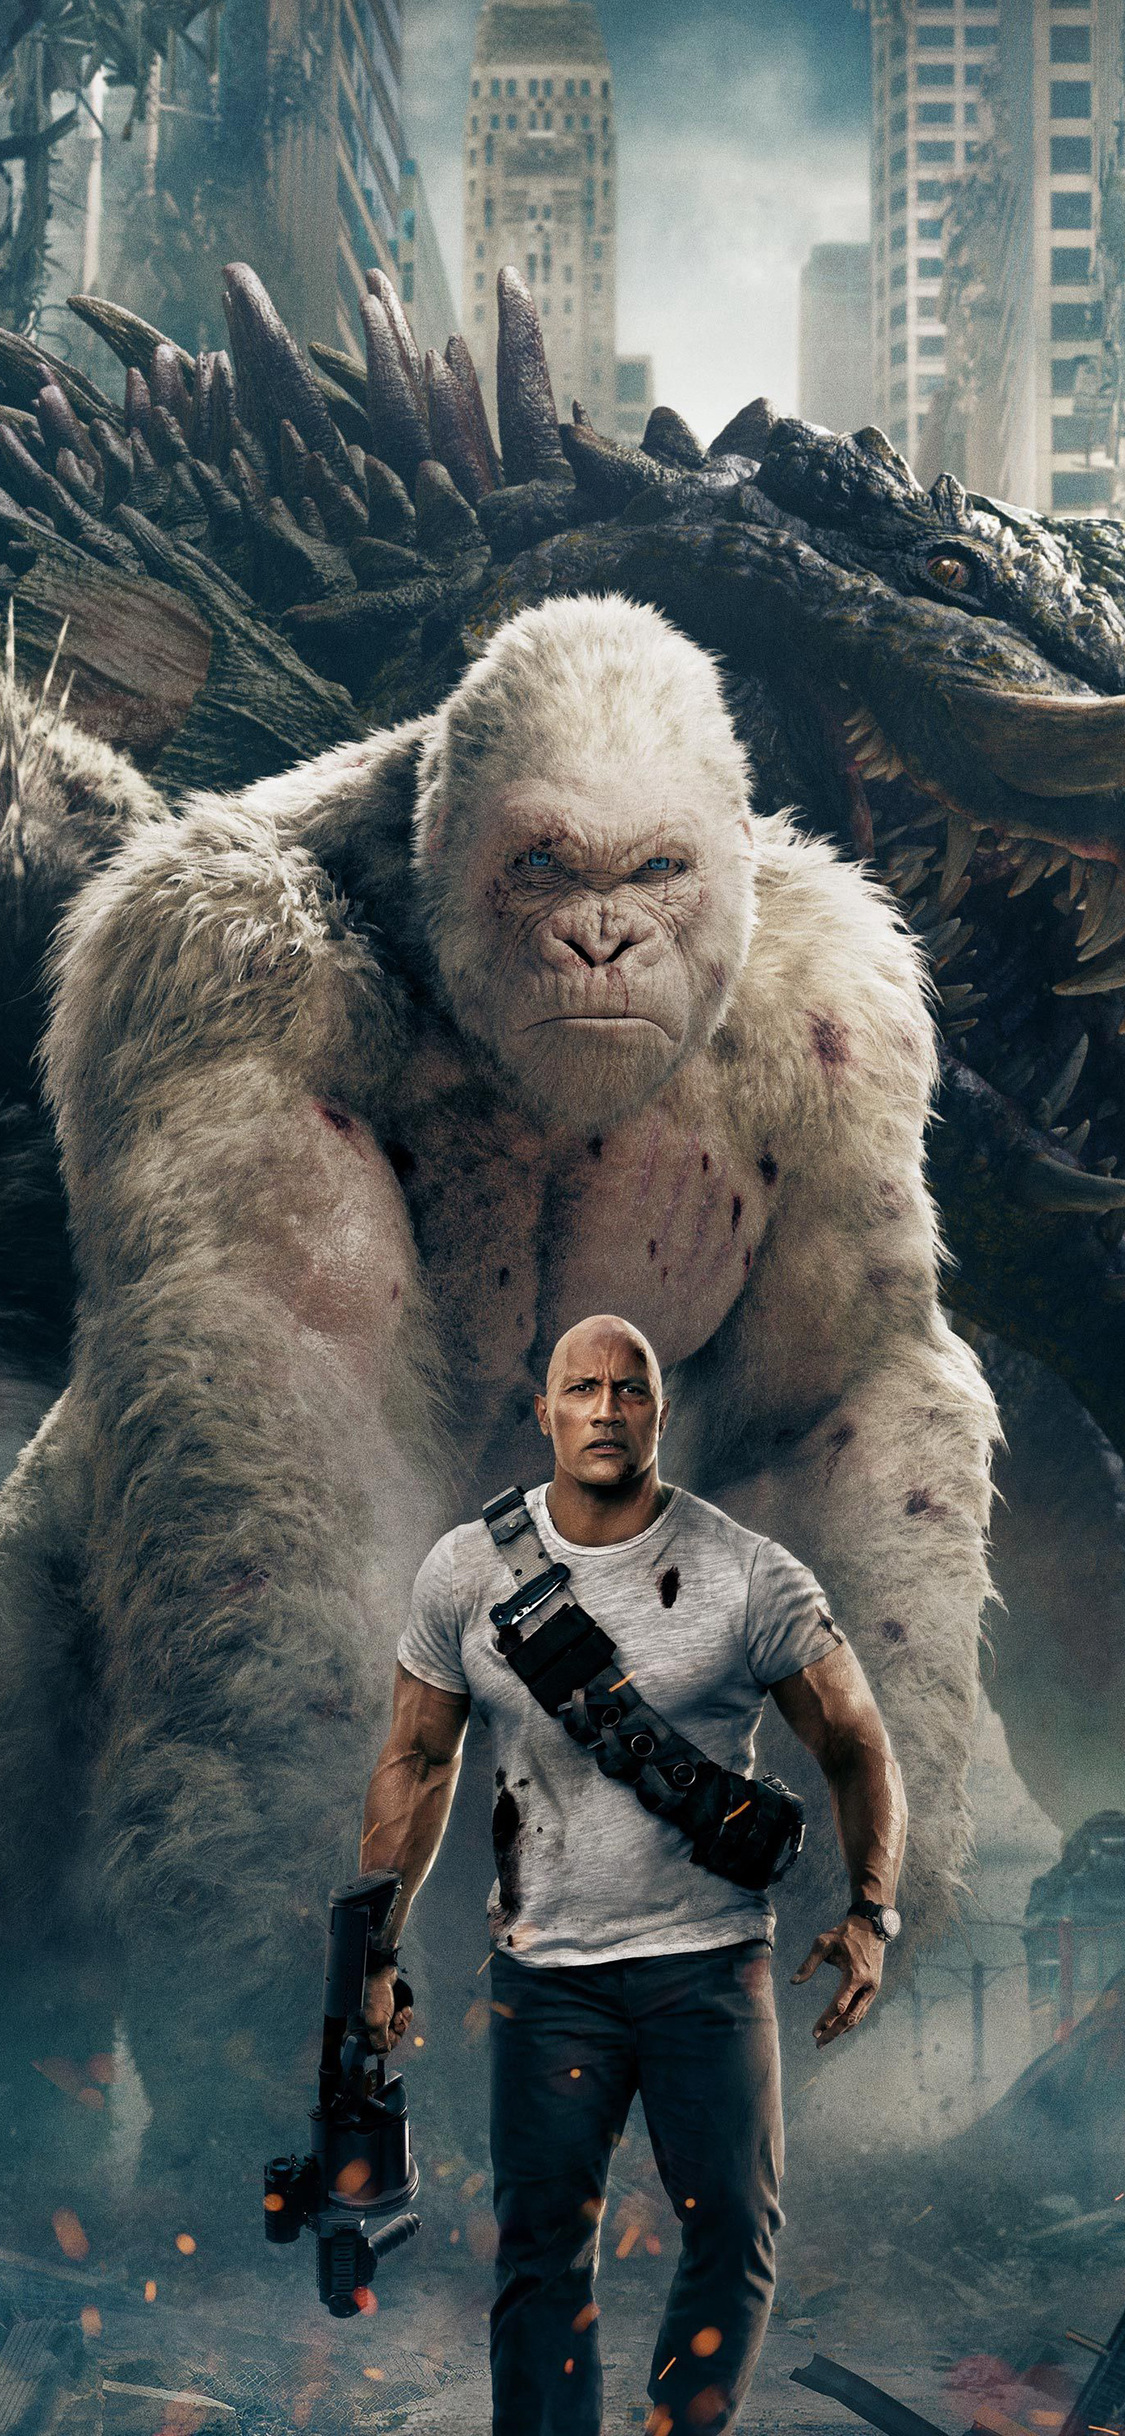 Must see Wallpaper Movie Iphone - rampage-movie-2018-xg-1125x2436  Pictures_303771.jpg